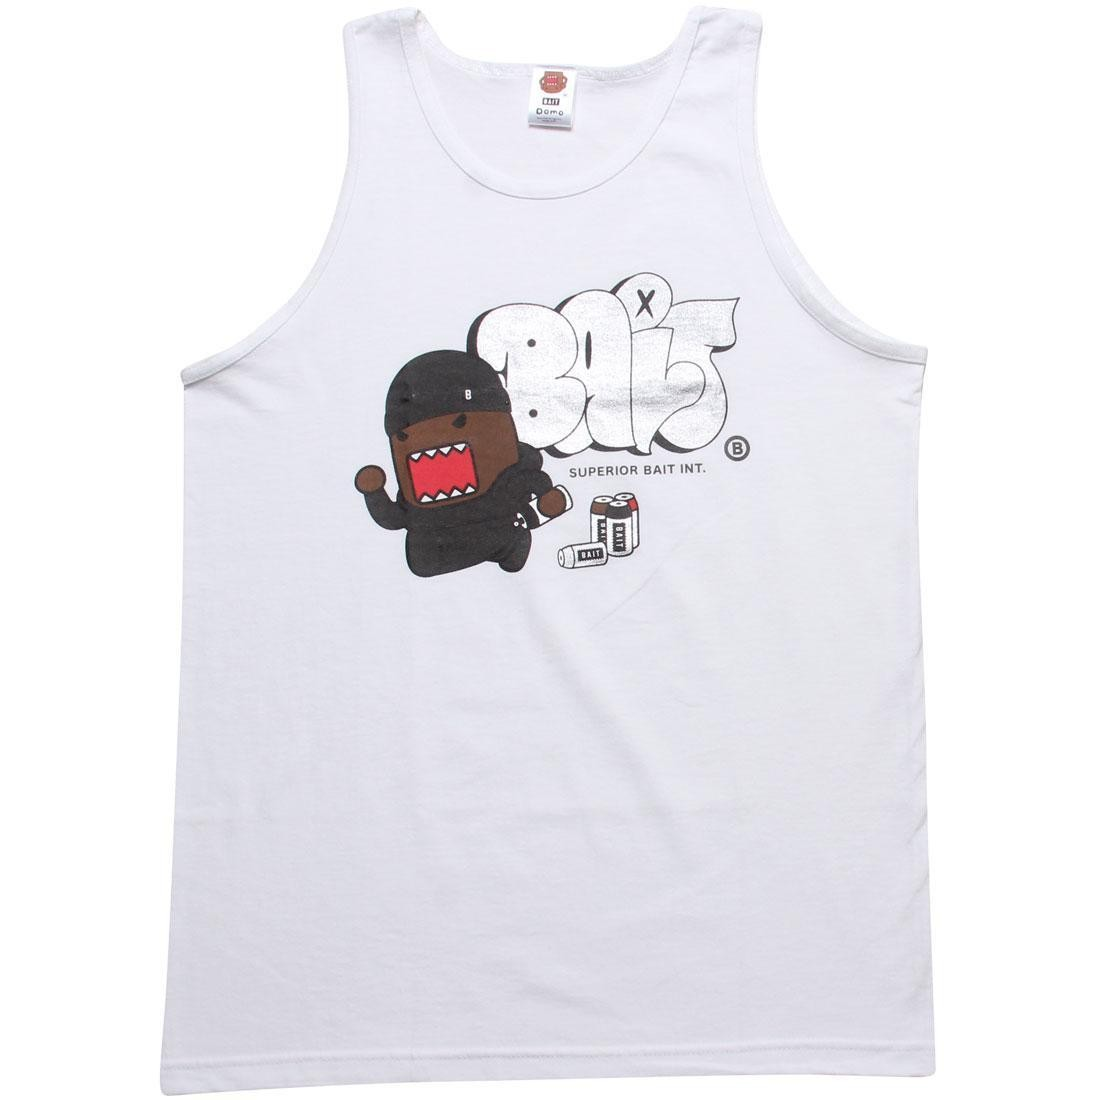 BAIT x Domo Graffiti Tank Top (white)